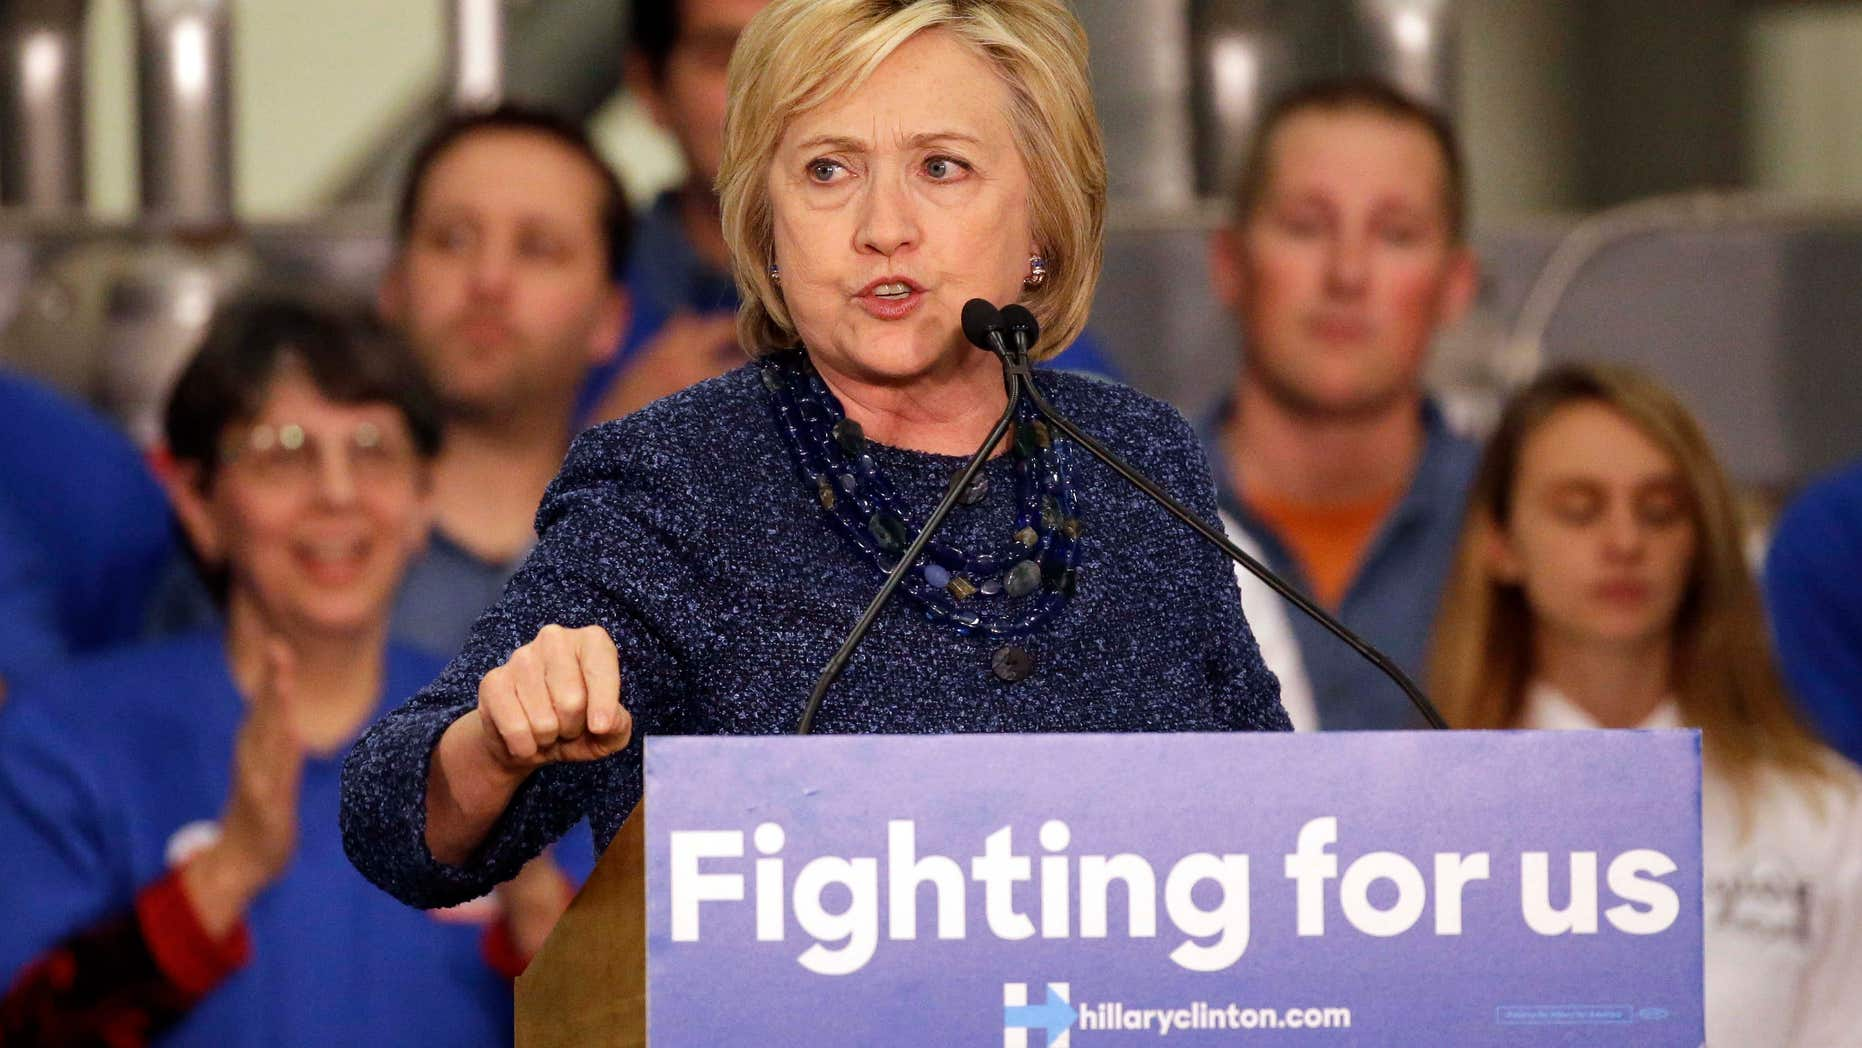 Dec. 11, 2015: Democratic presidential candidate Hillary Clinton speaks to supporters during a campaign stop at a union hall in St. Louis.